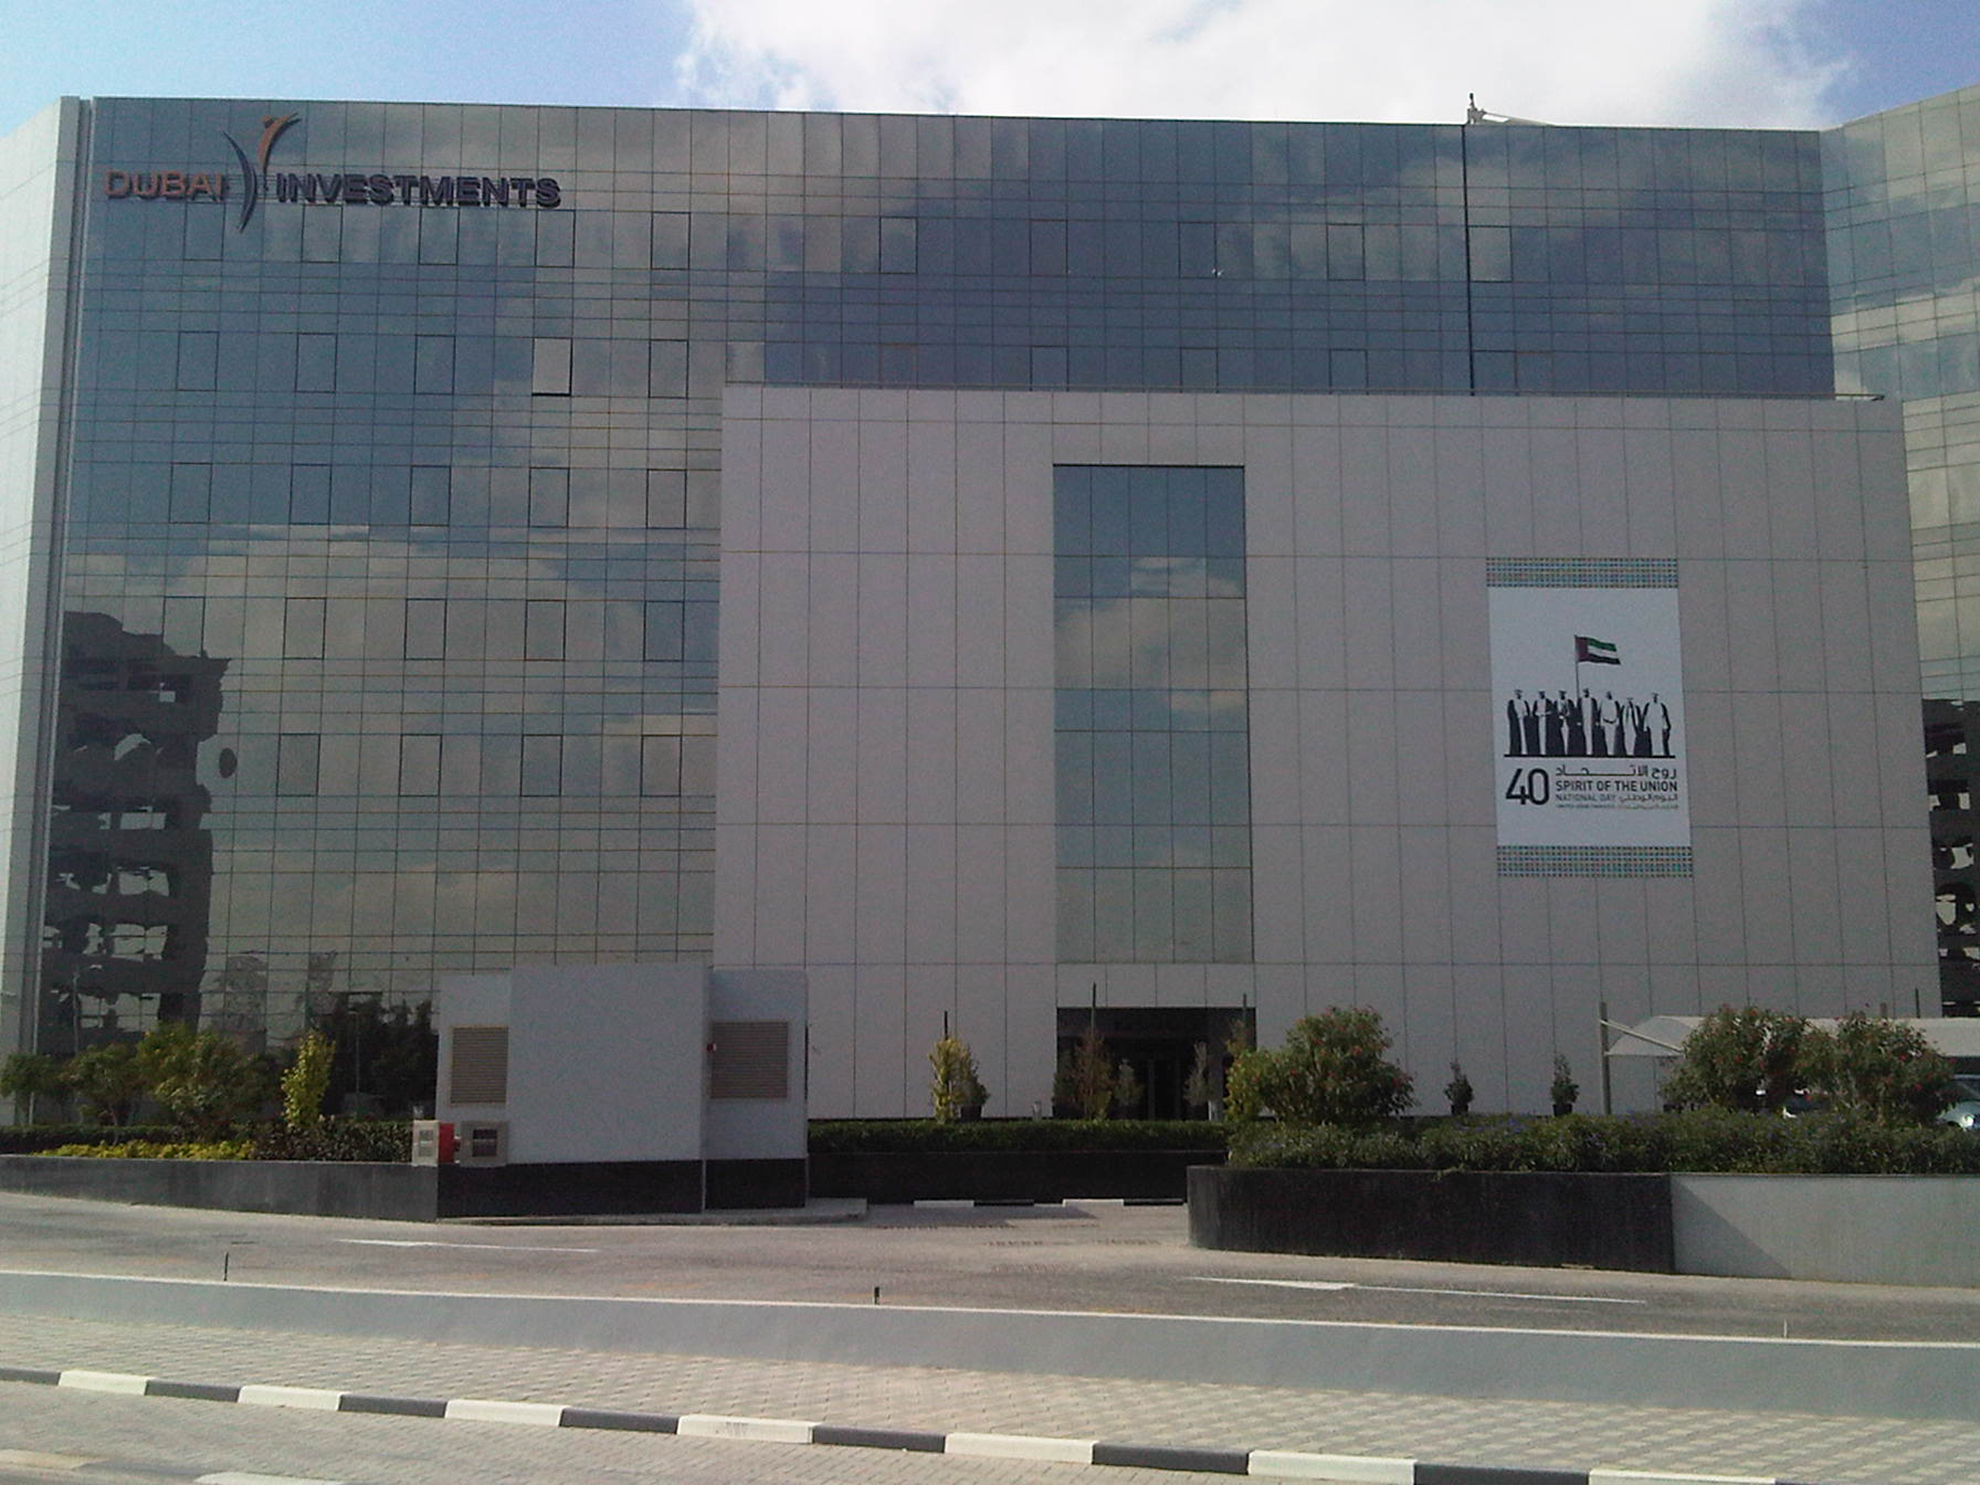 Dubai-Headquarters-investments.-Dubai.-Larson-PE-2_1585898494.jpg